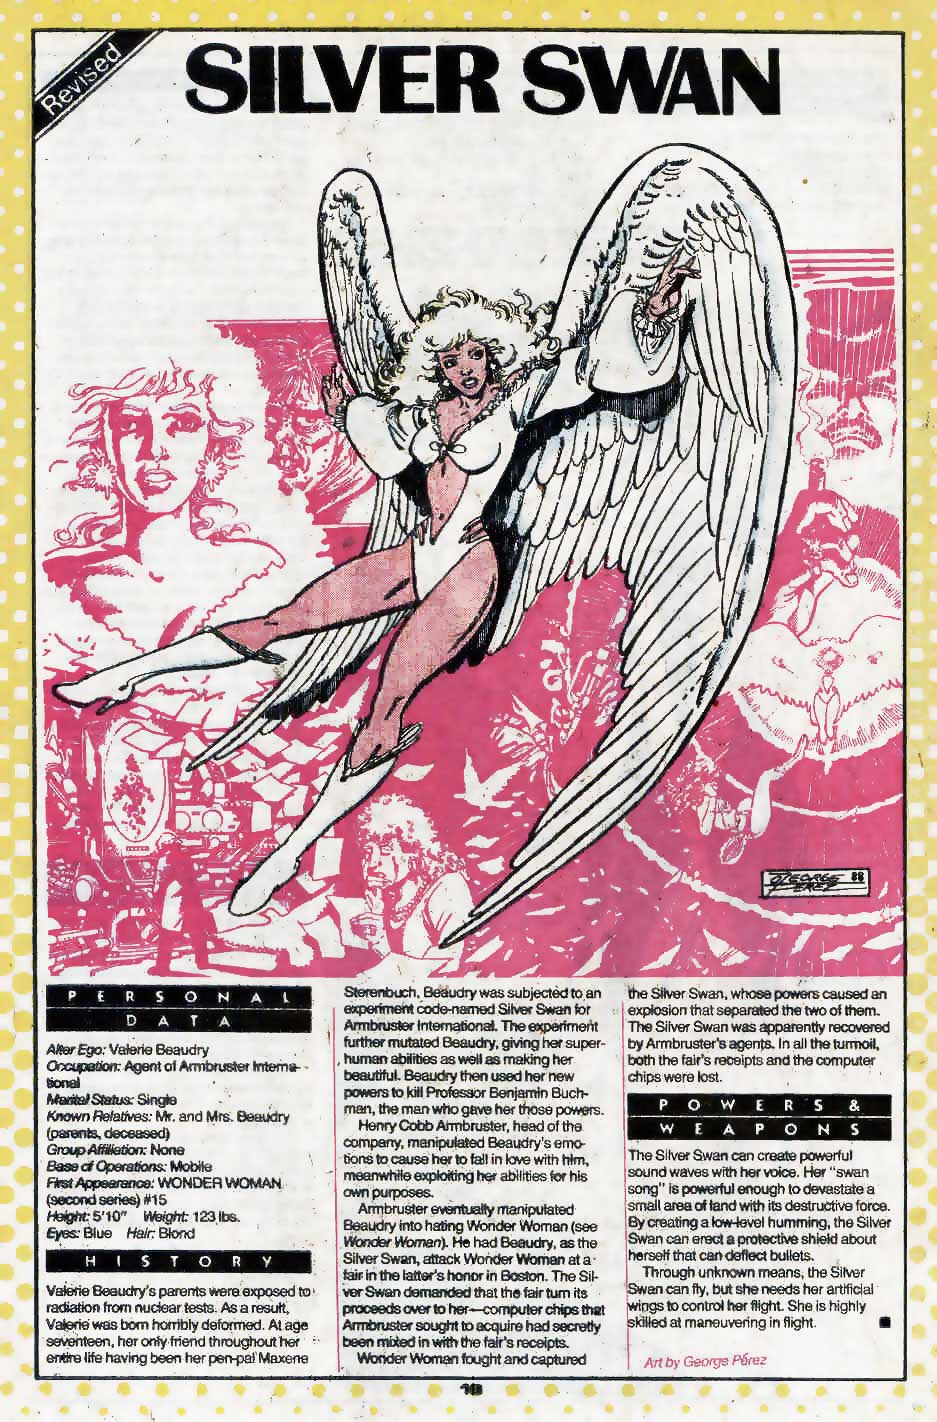 Who's Who Update 88 #3 Silver Swan by George Perez